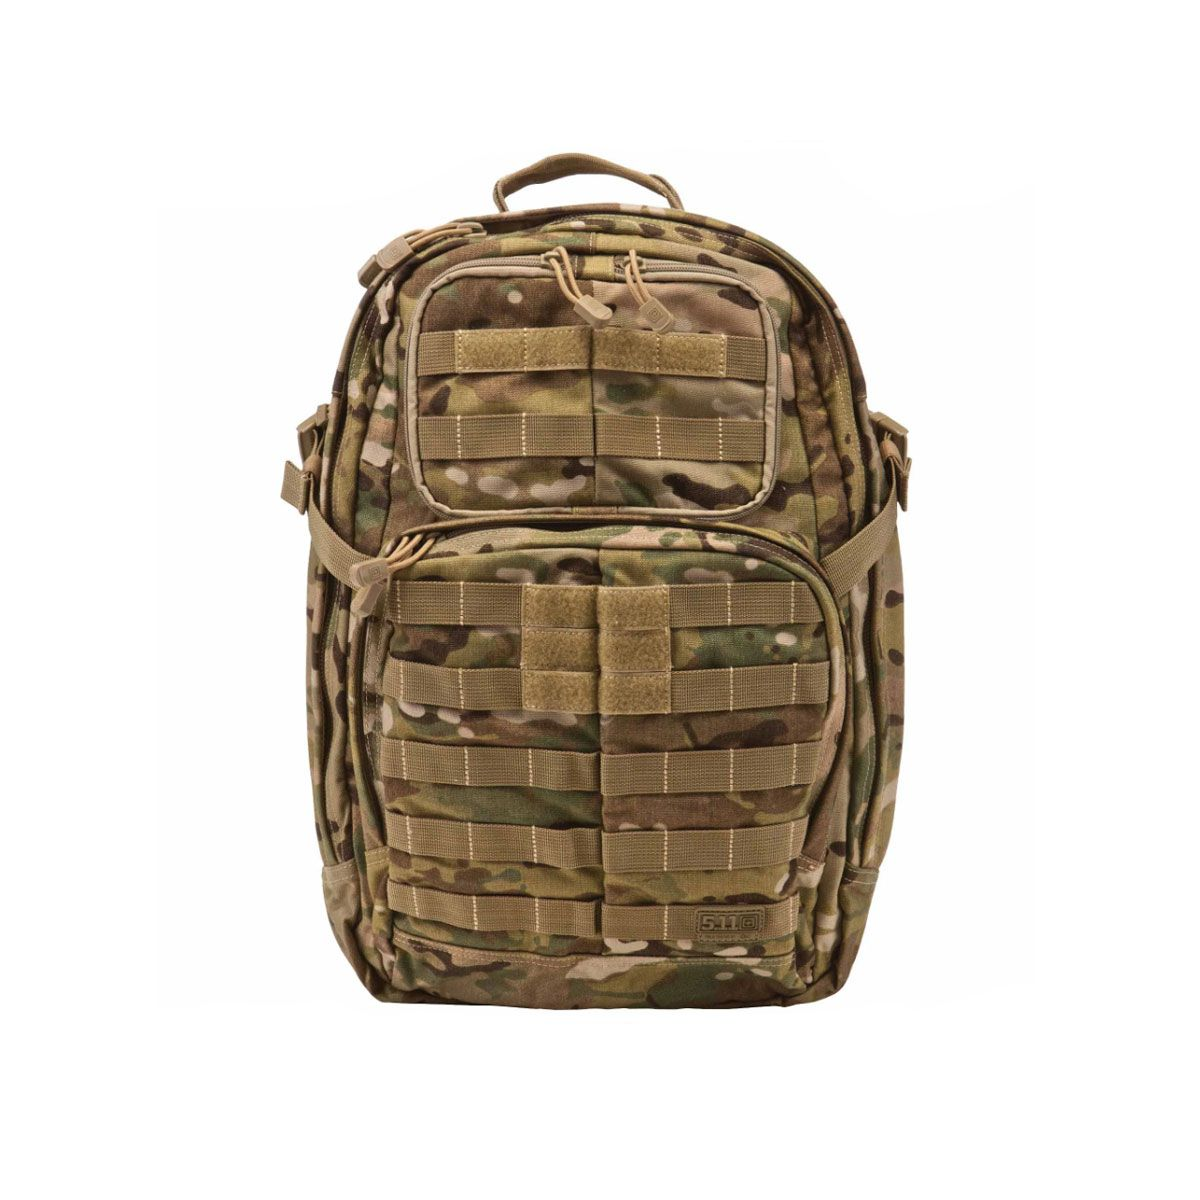 Mochila Tatica Rush 24 BackPack Multicam